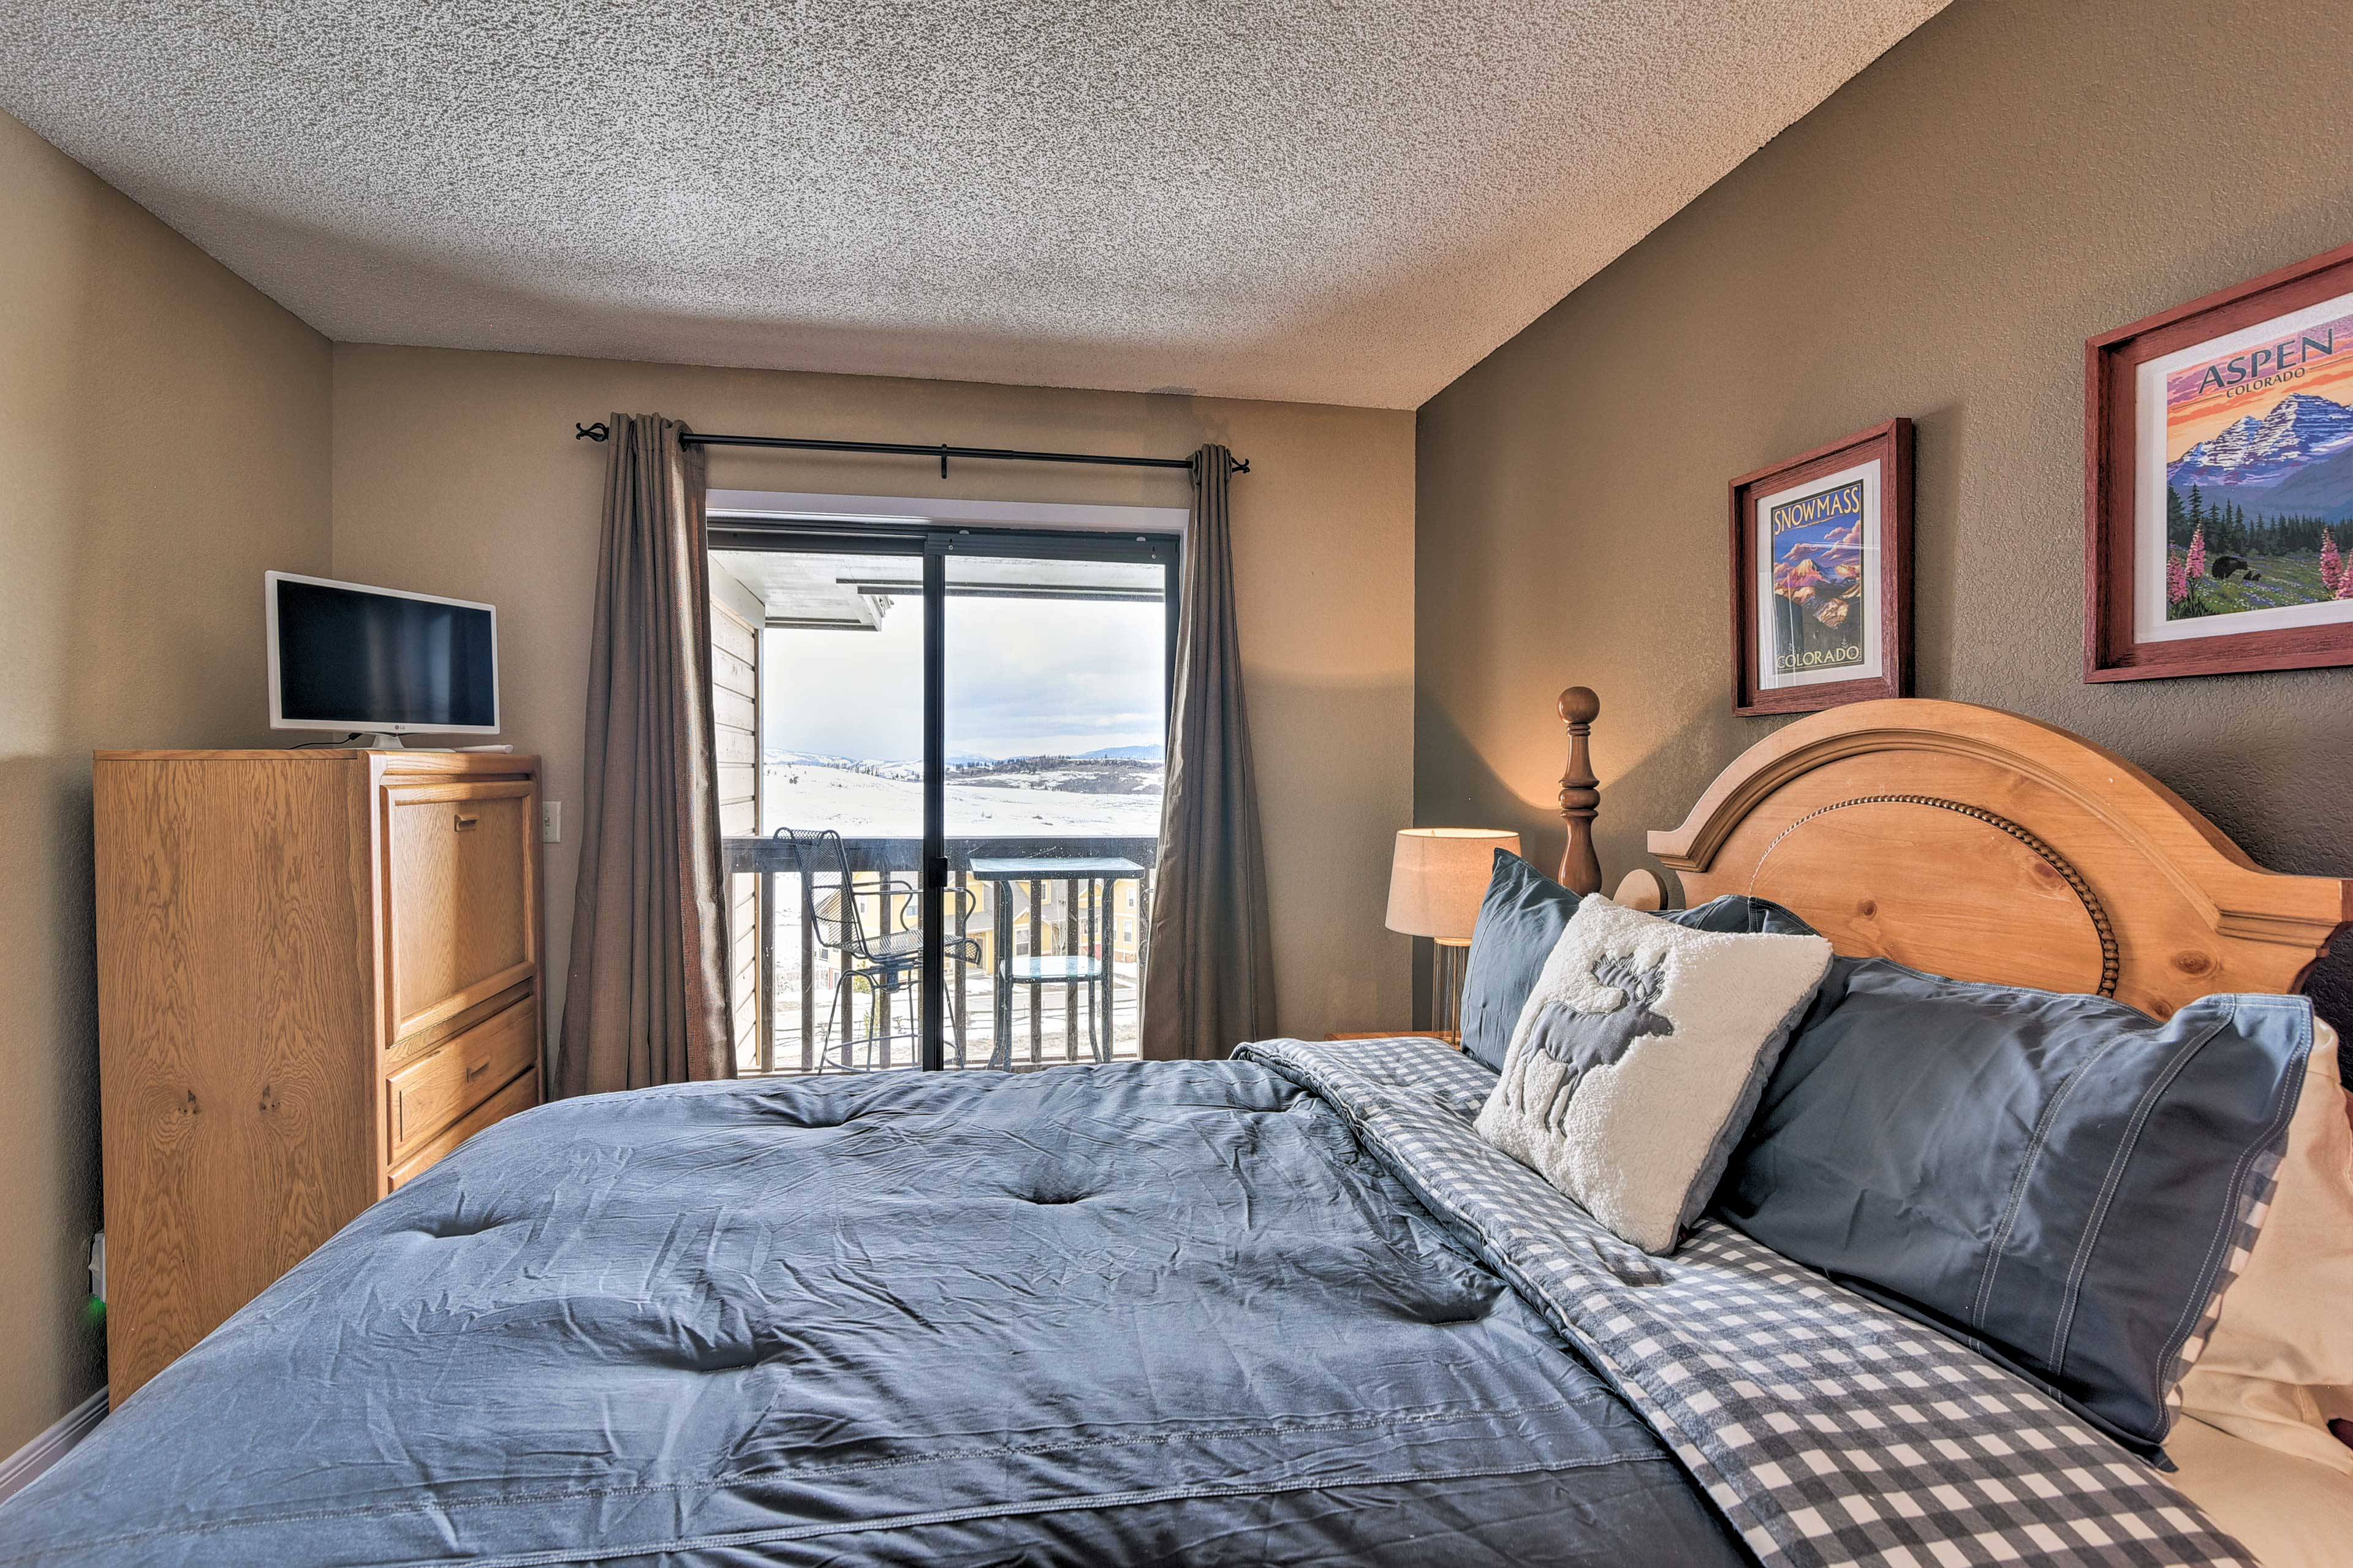 Guests staying in the second bedroom will have access to the balcony.